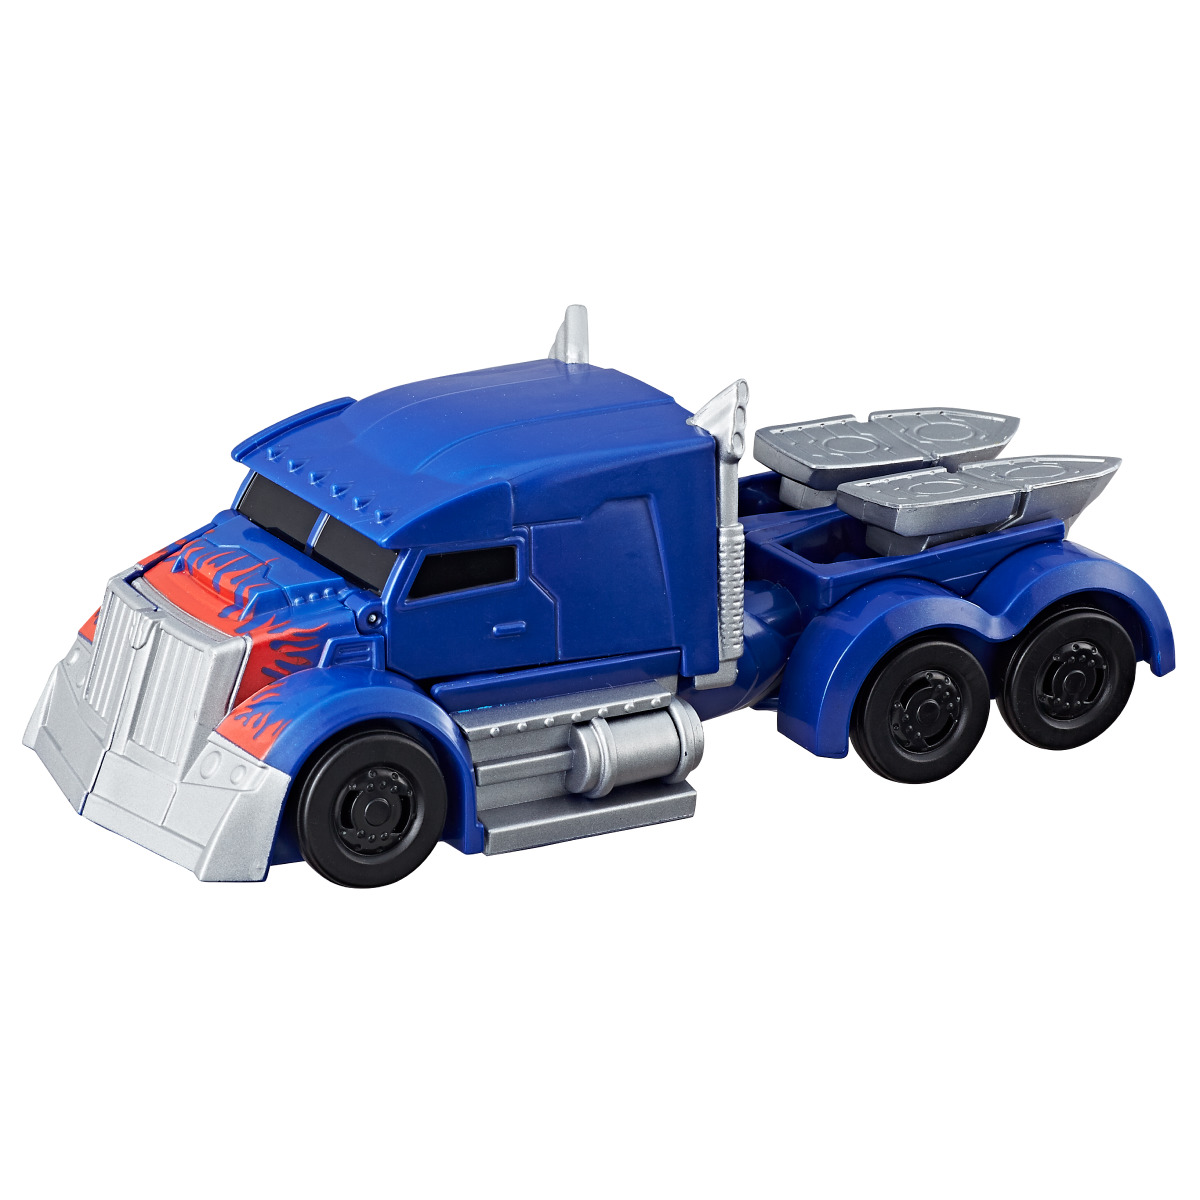 Transformers power cube